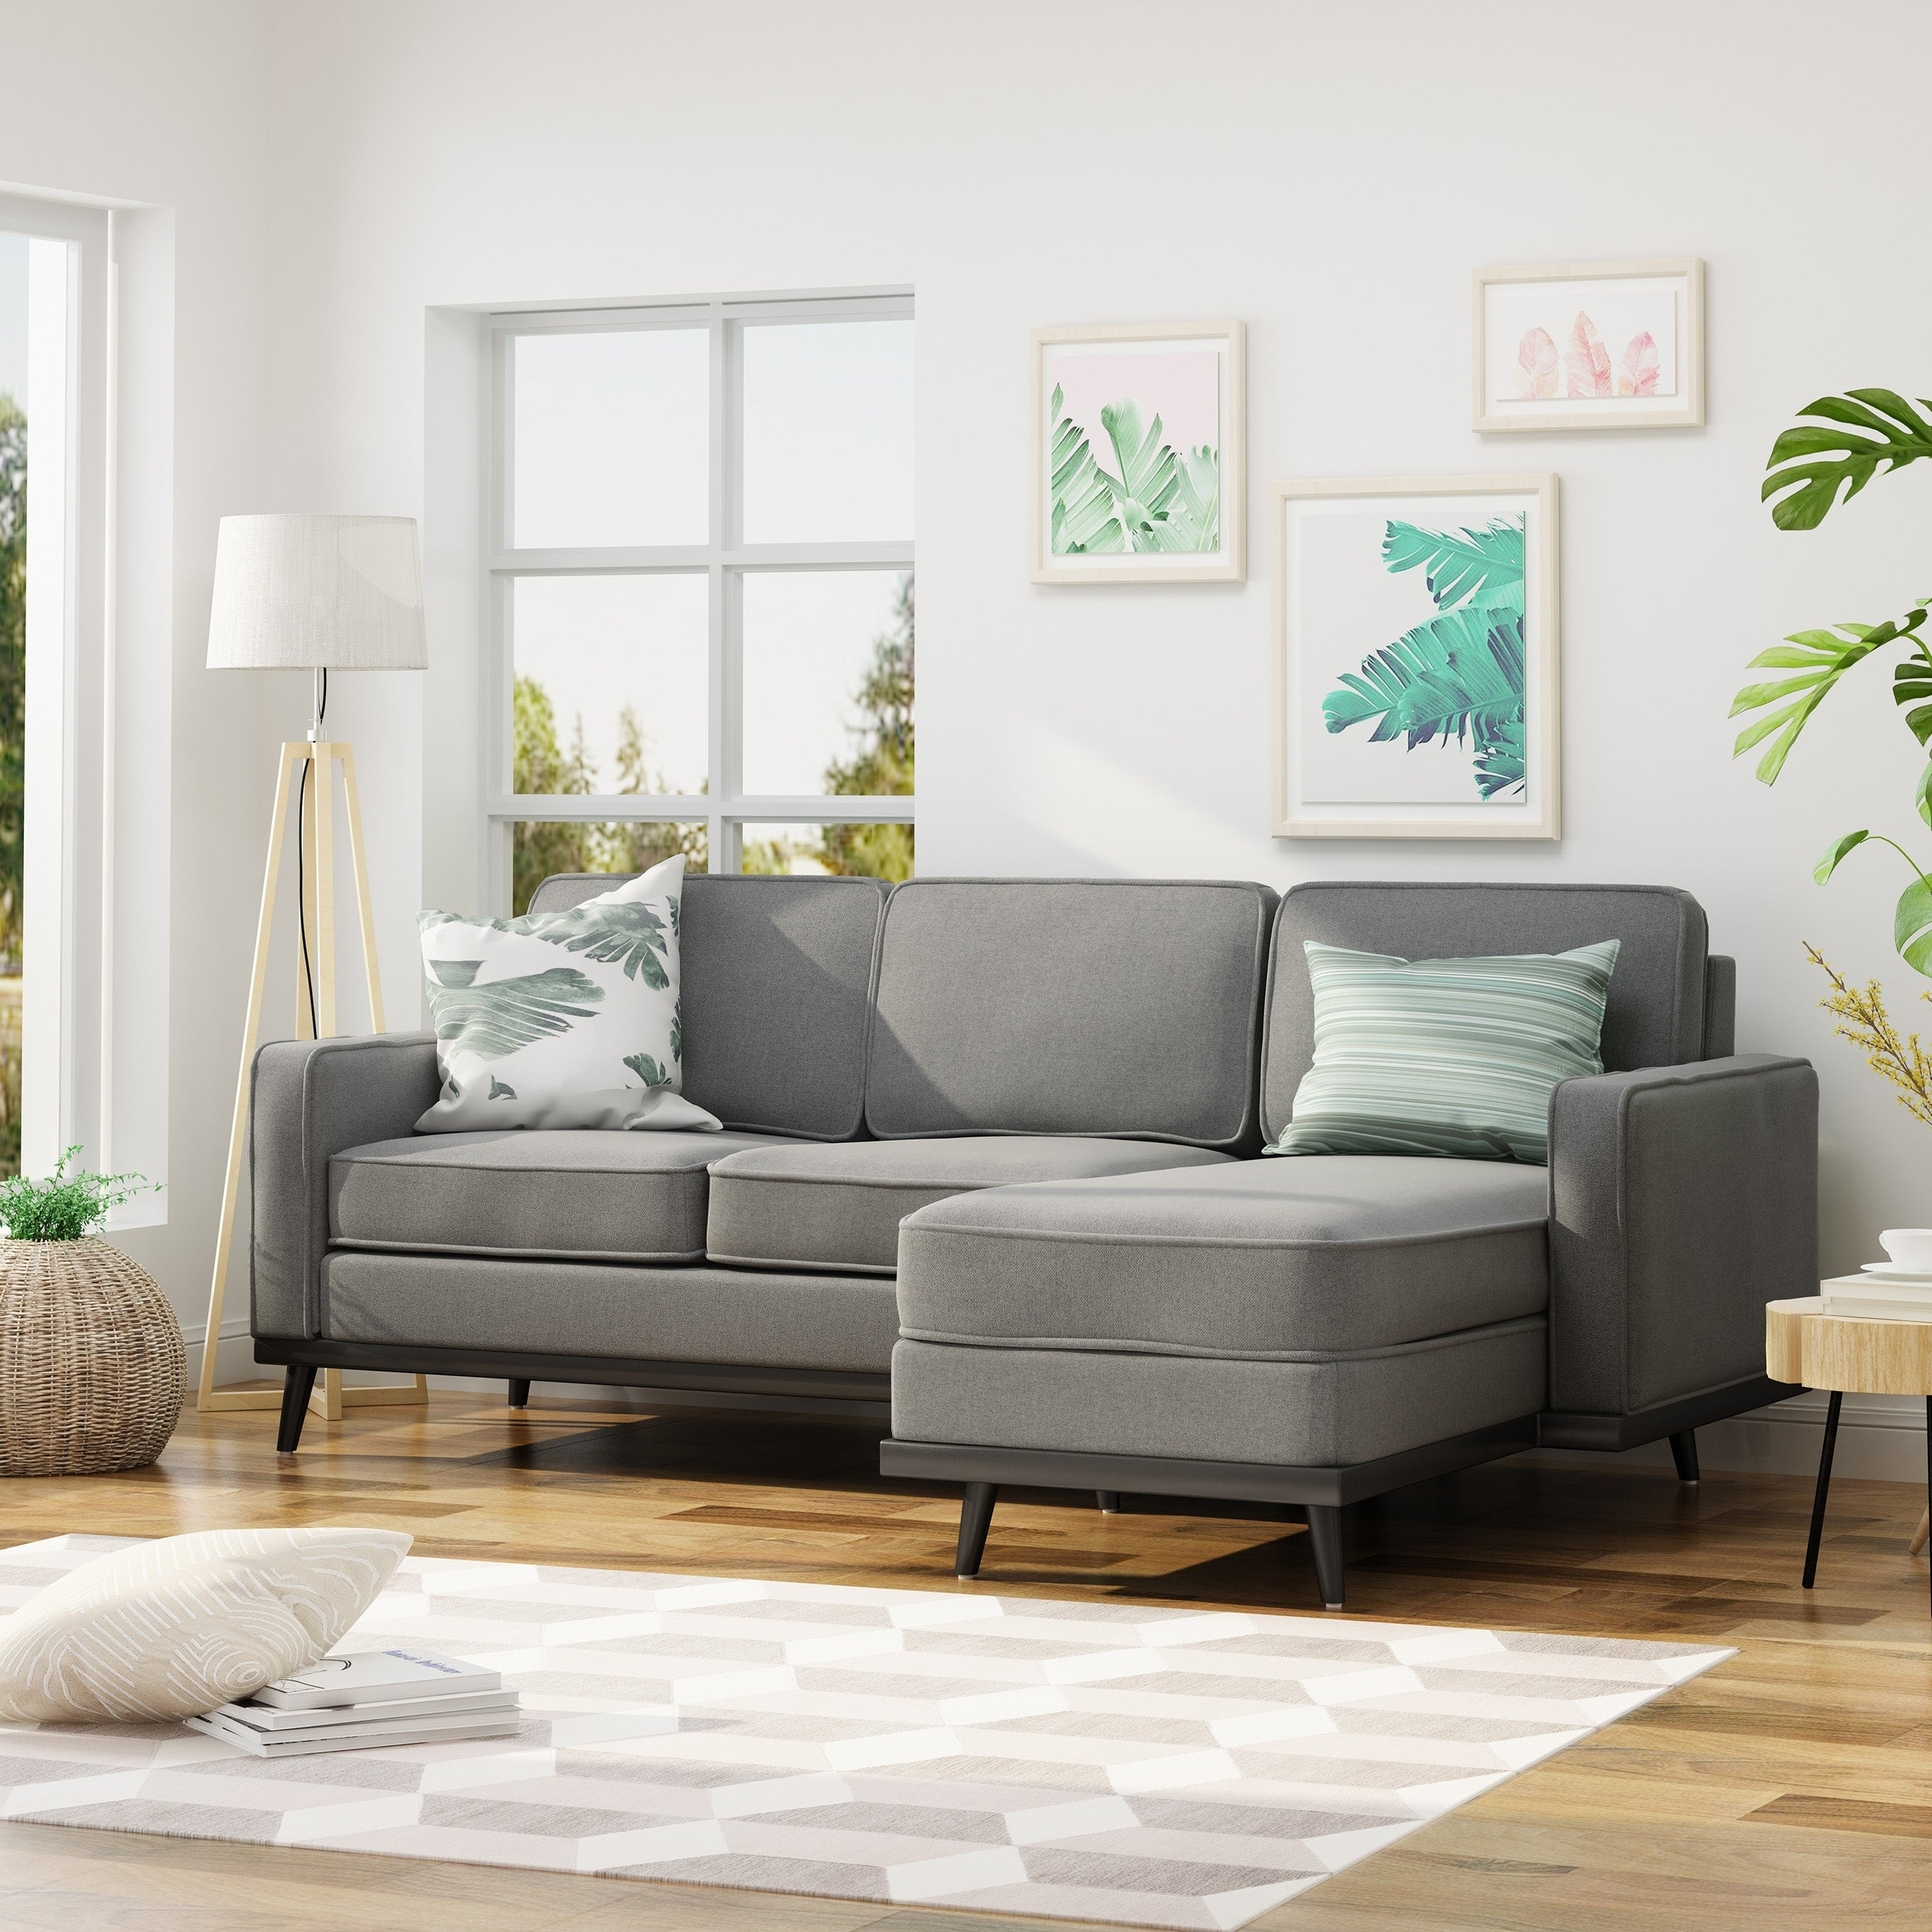 Matilda Mid Century Fabric Chaise Sectional Sofa By Christopher Knight Home  (Option: Grey)